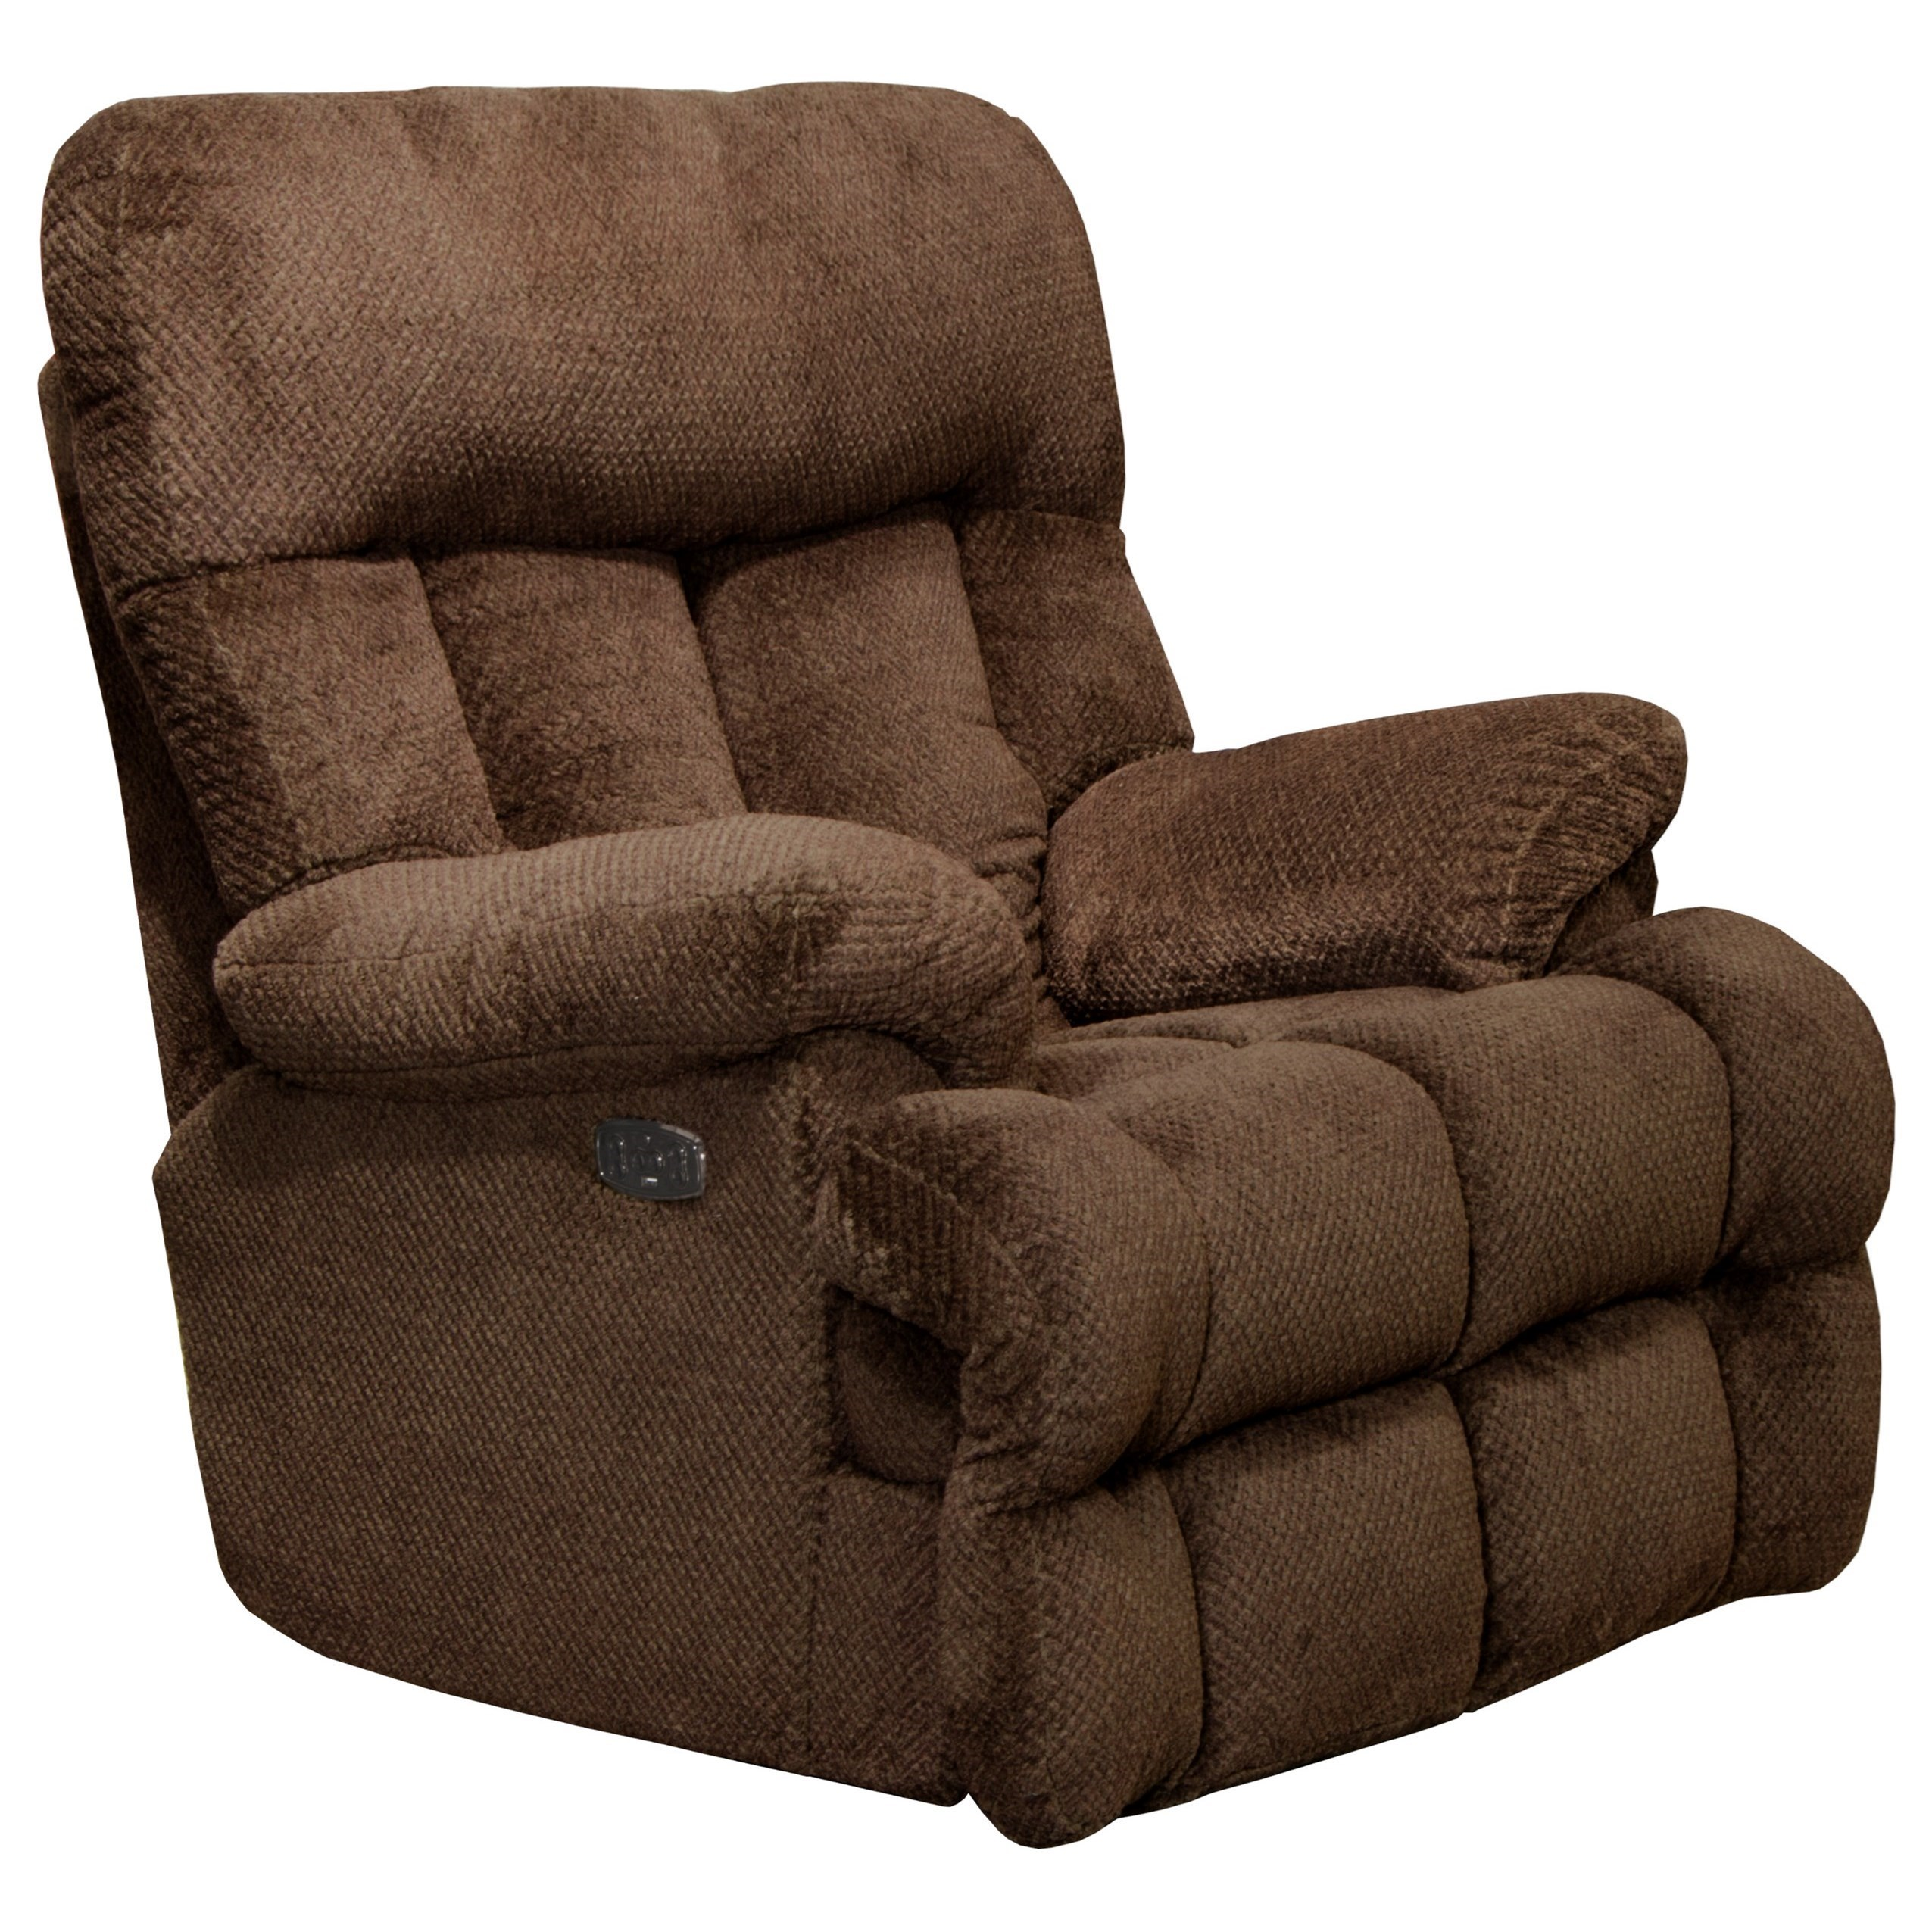 Catnapper Manley Power Headrest Lay Flat Recliner With Extended Ottoman